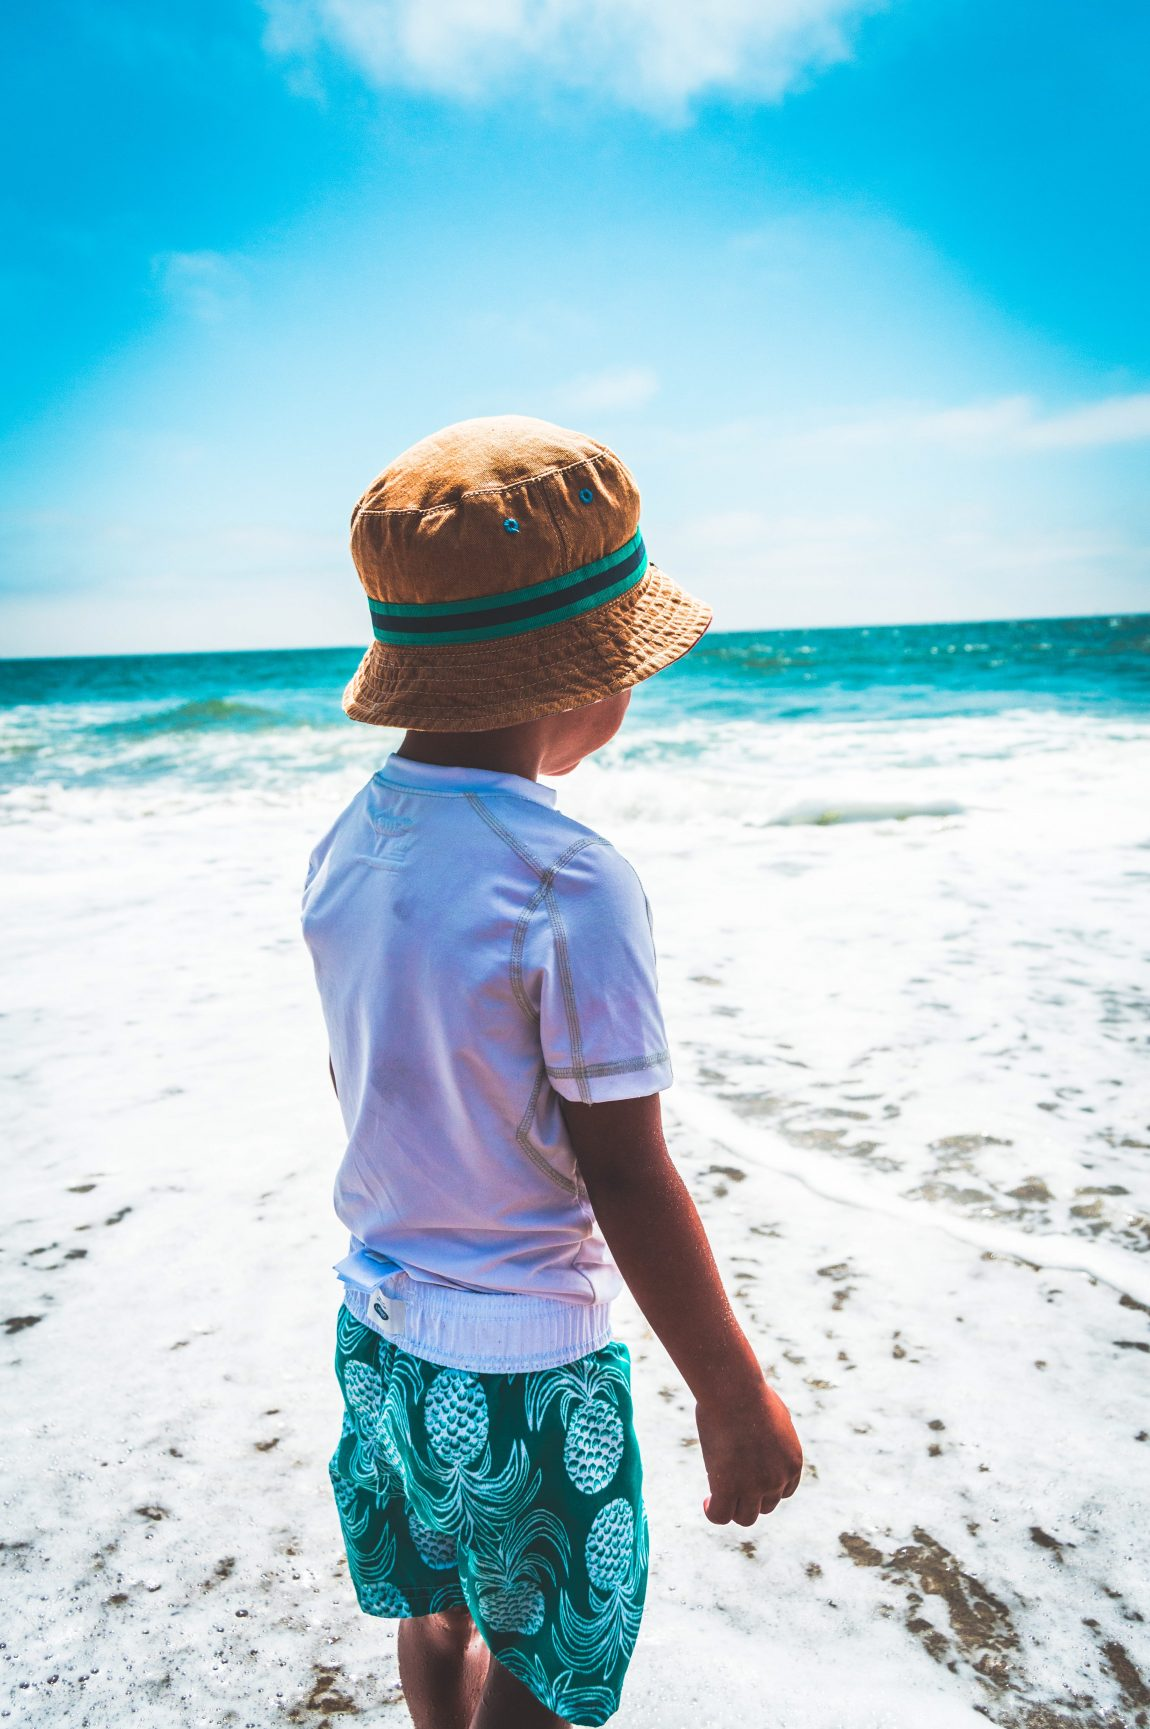 a small boy stood on the beach on a summer day. He is wearing a white tshirt, green shorts and a sun hat